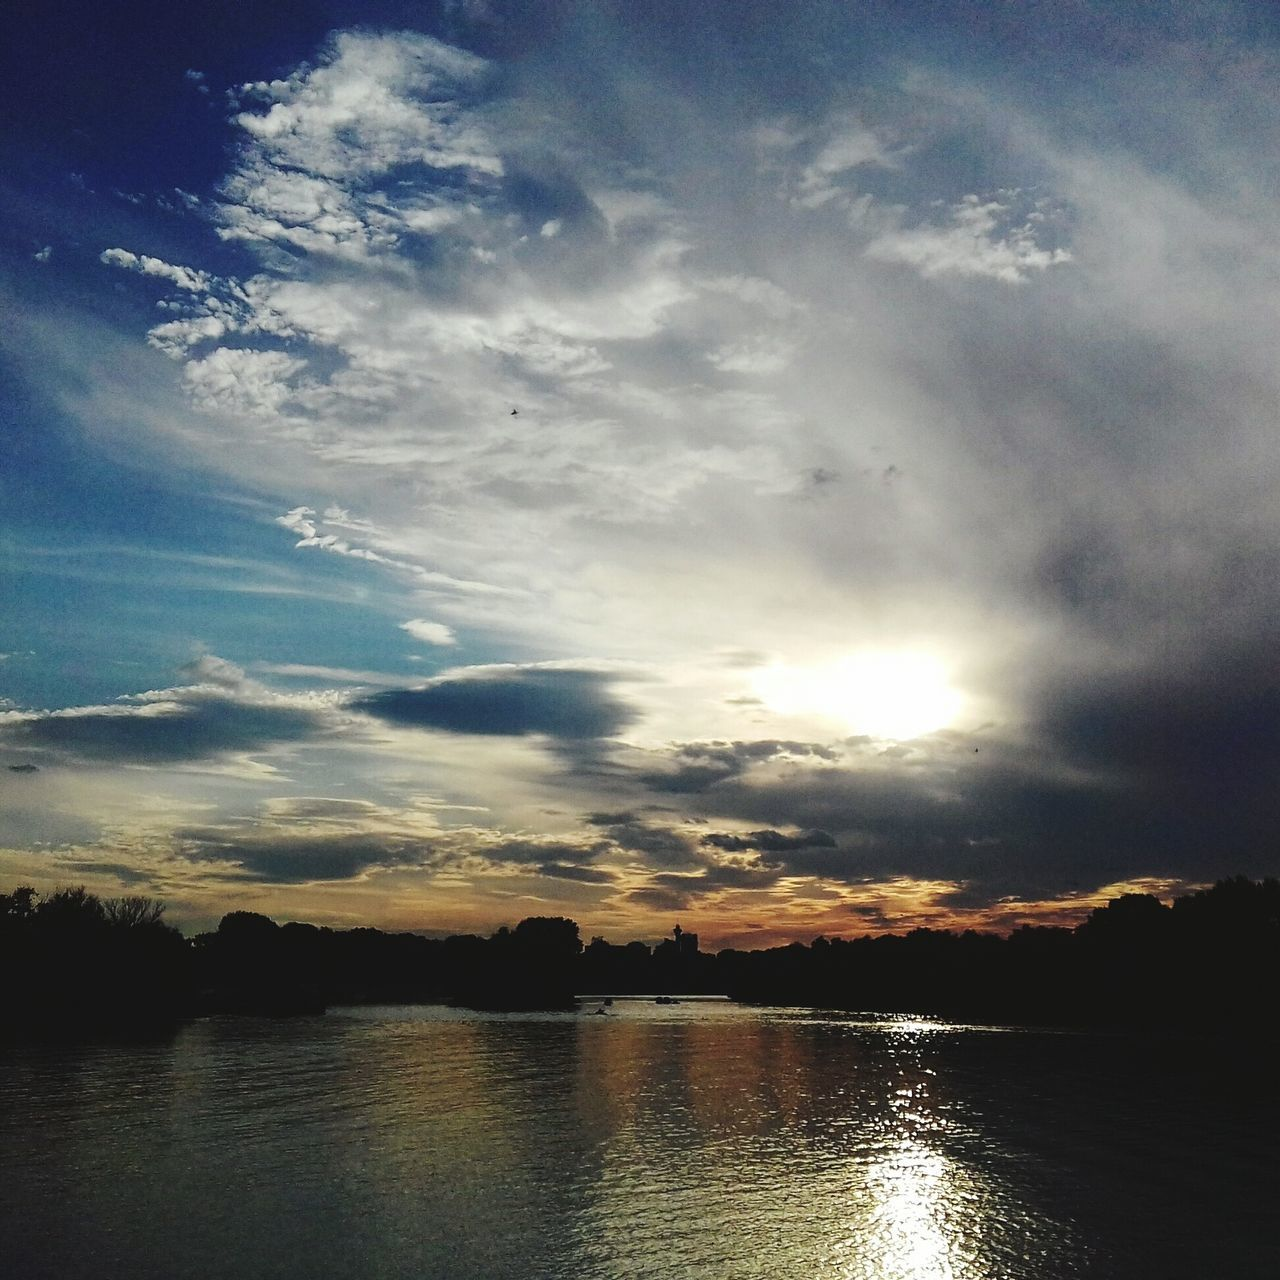 sunset, water, reflection, sky, scenics, nature, tranquility, beauty in nature, no people, tranquil scene, lake, sun, cloud - sky, silhouette, outdoors, day